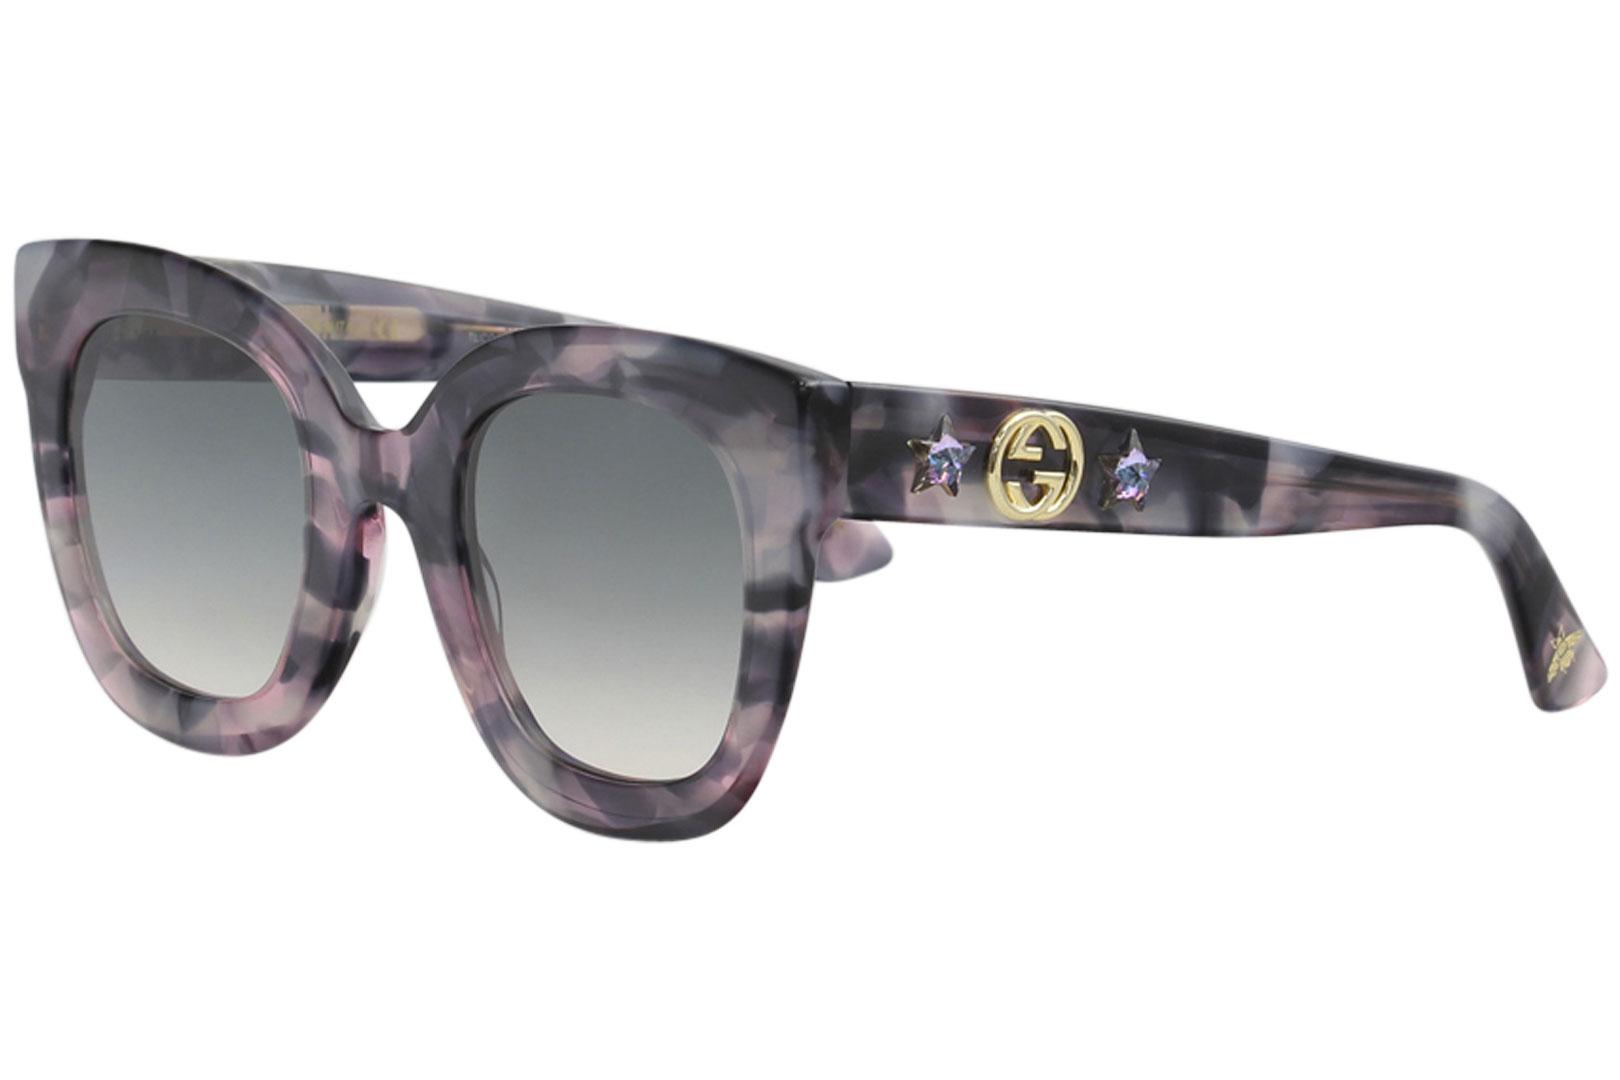 0a17975e92e Gucci Women s GG0208S GG 0208 S Fashion Square Sunglasses